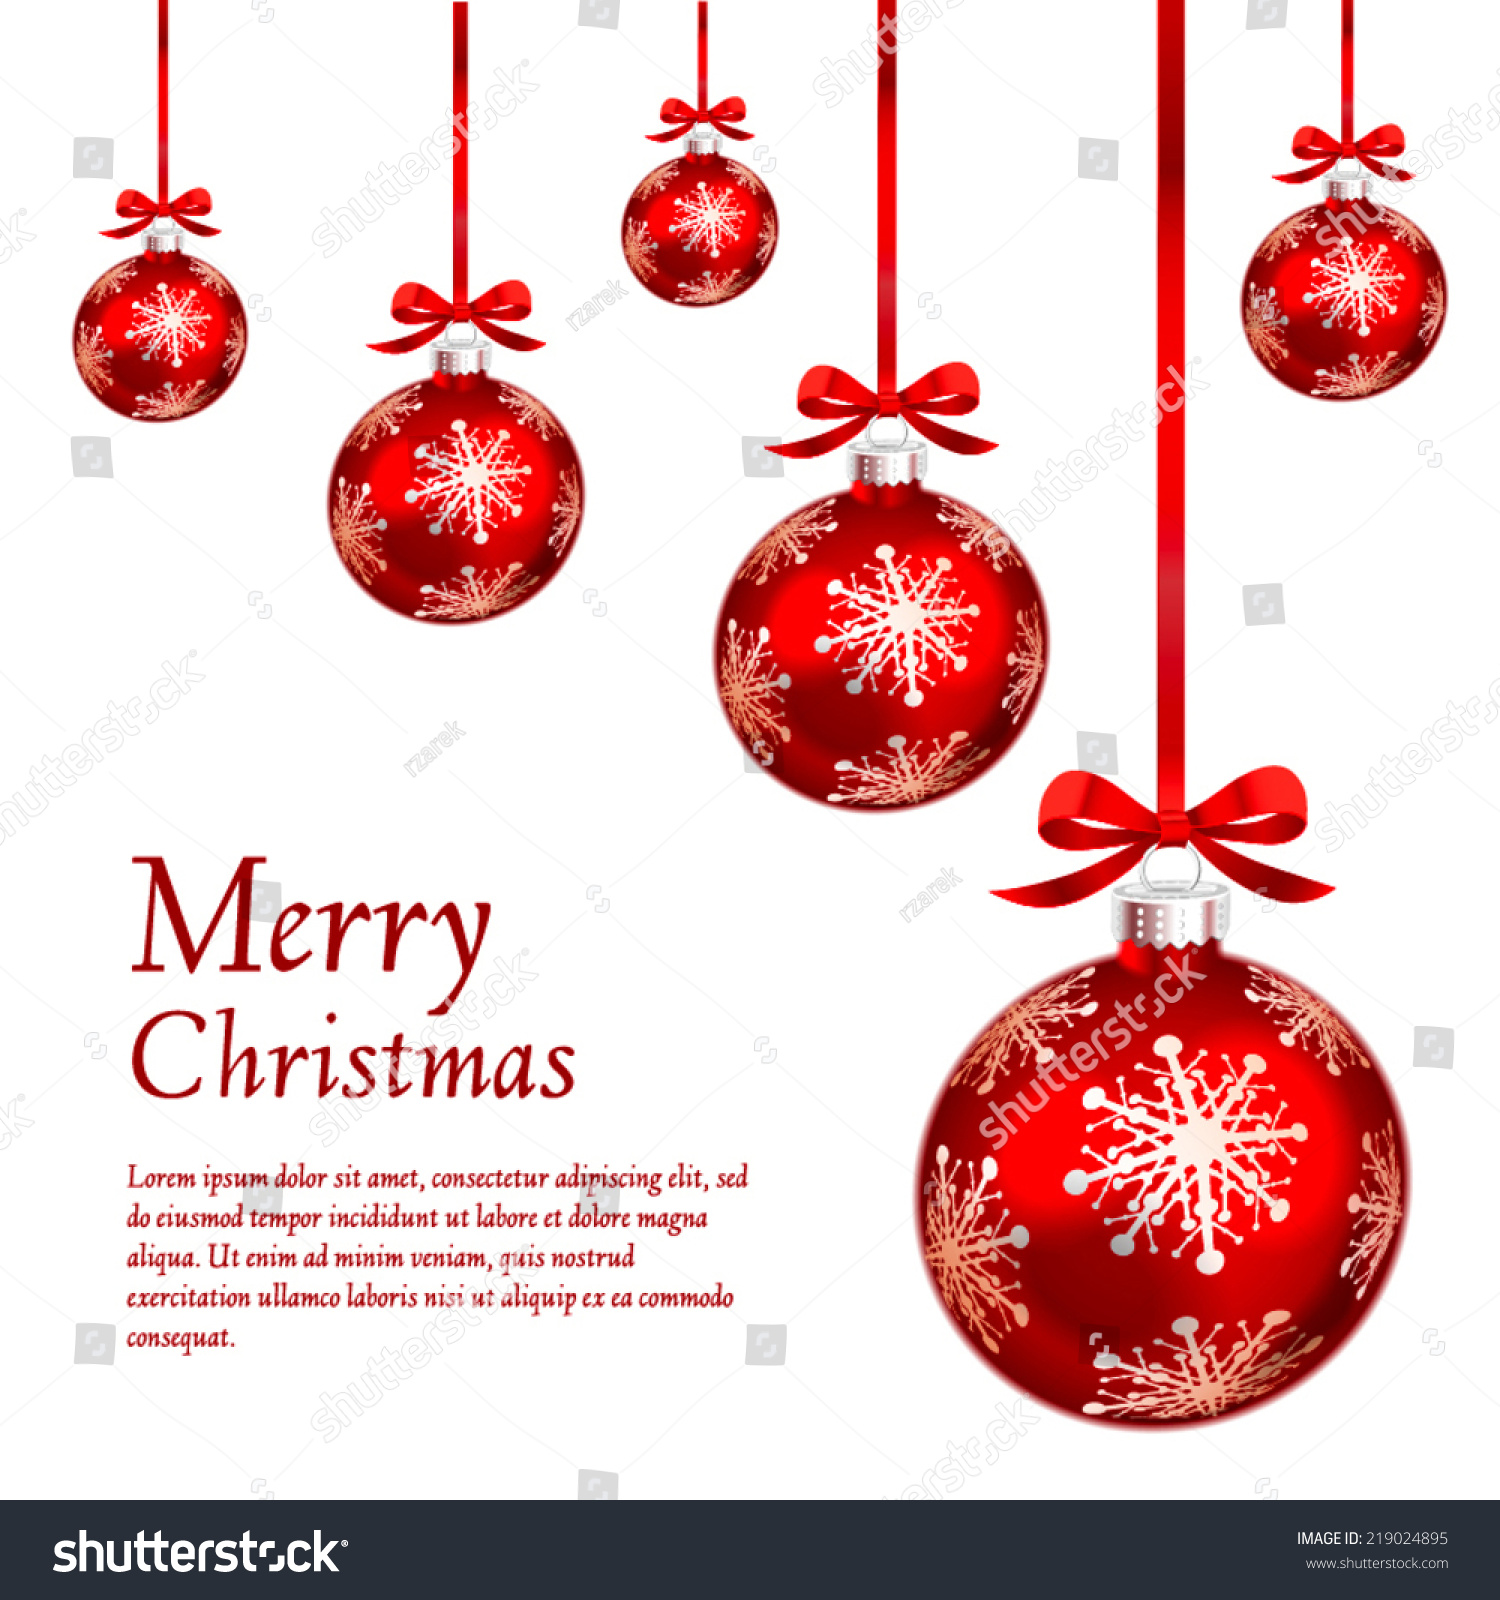 Card Red Christmas Ornaments Vector Illustration Stock Vector ...